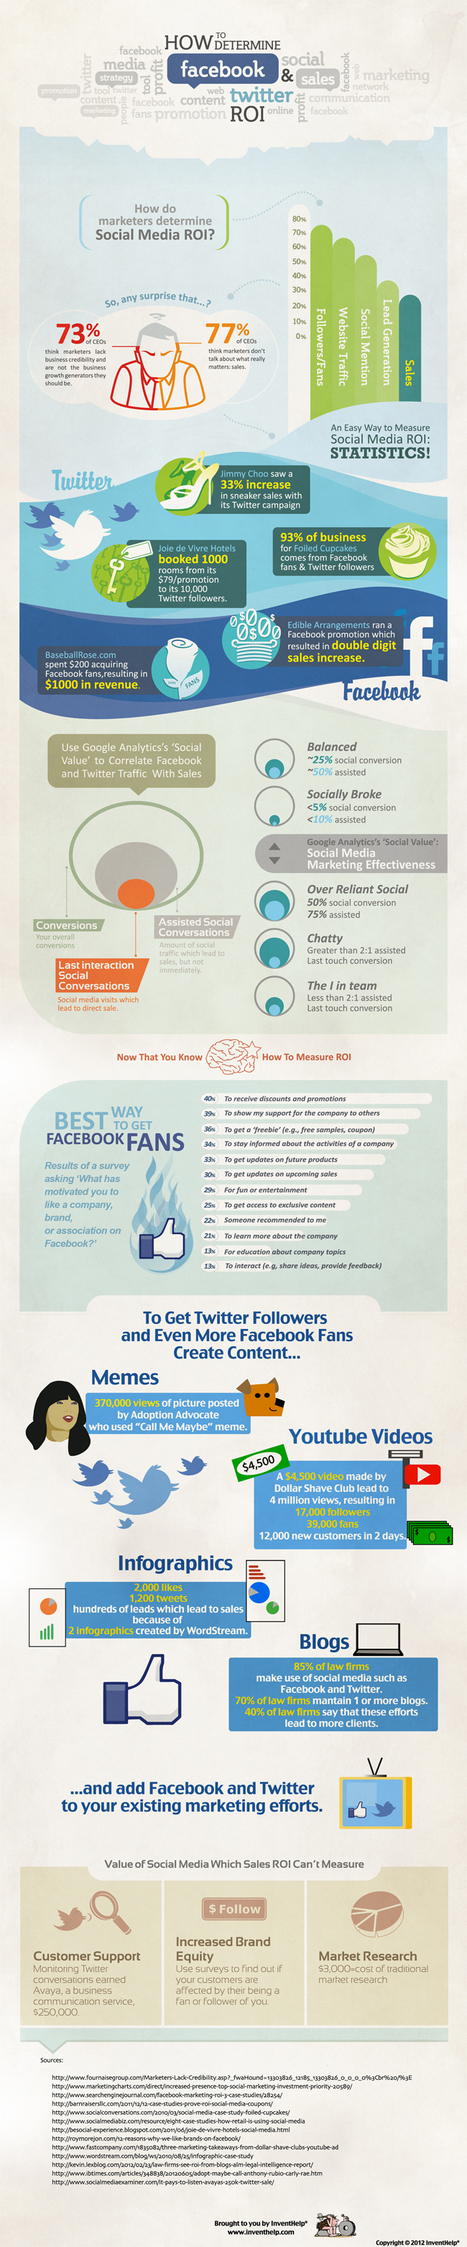 How To Determine Facebook And Twitter ROI + #Infographic | M & S | Scoop.it